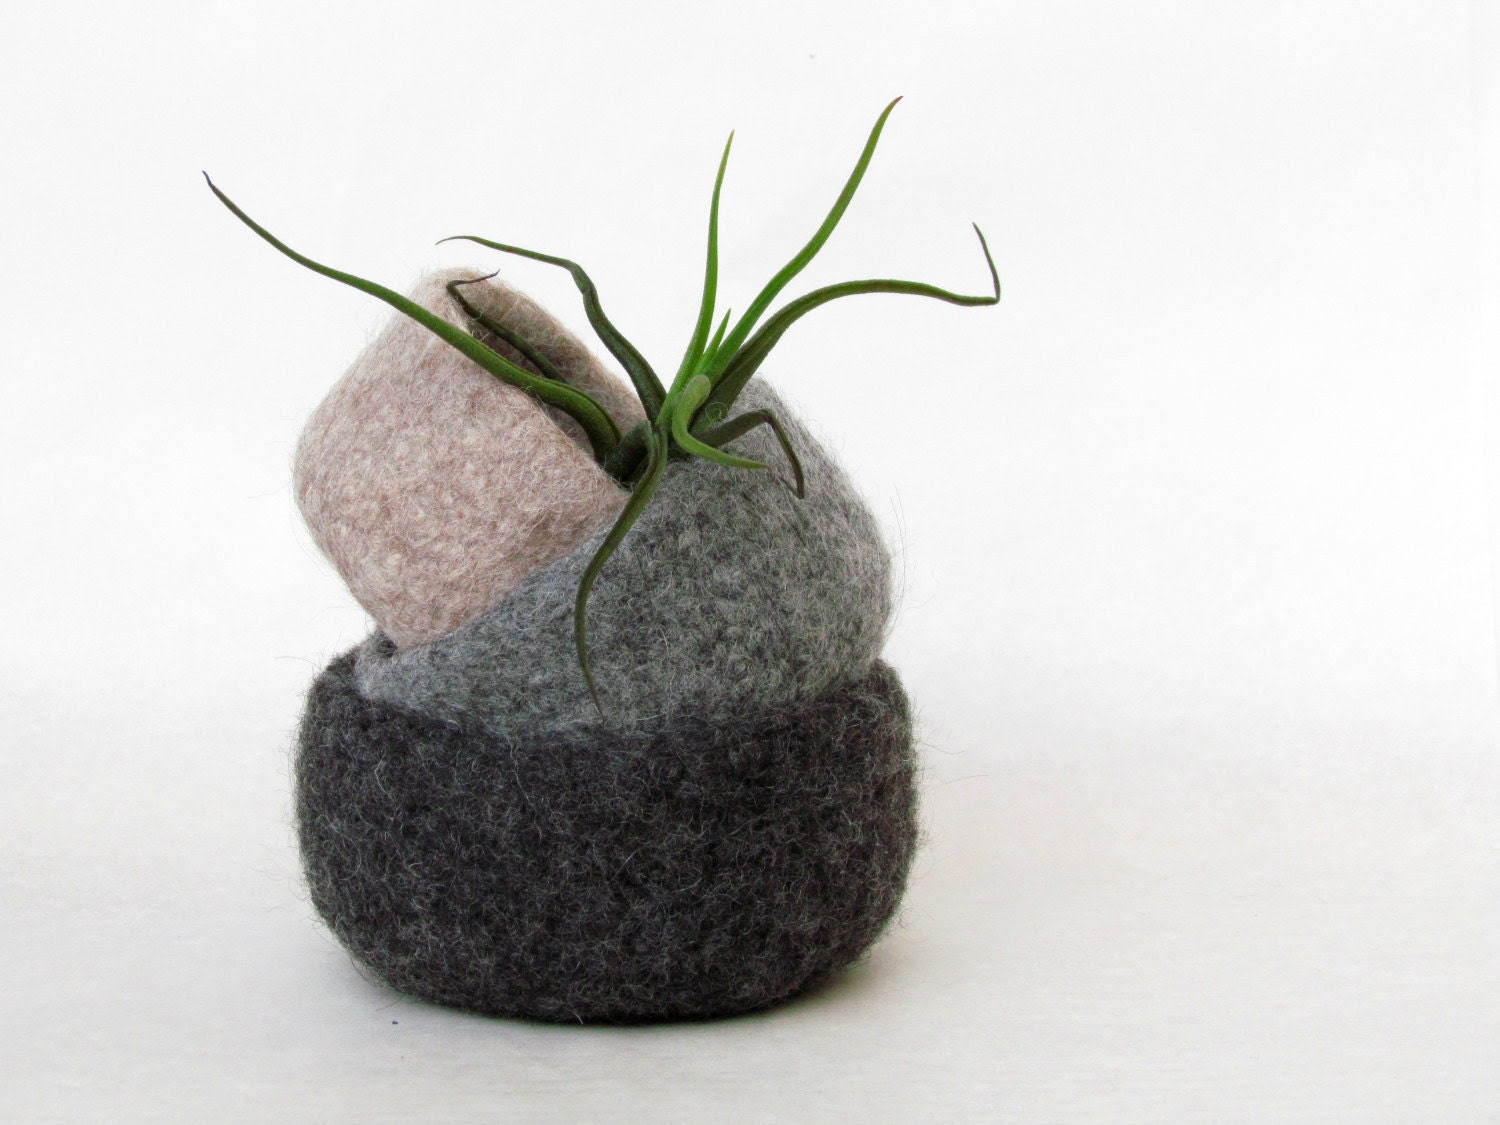 Felted wool nesting bowl Natural colors - Organic eco-friendly - waldorf toy - Grey and earth tones - office container - theYarnKitchen